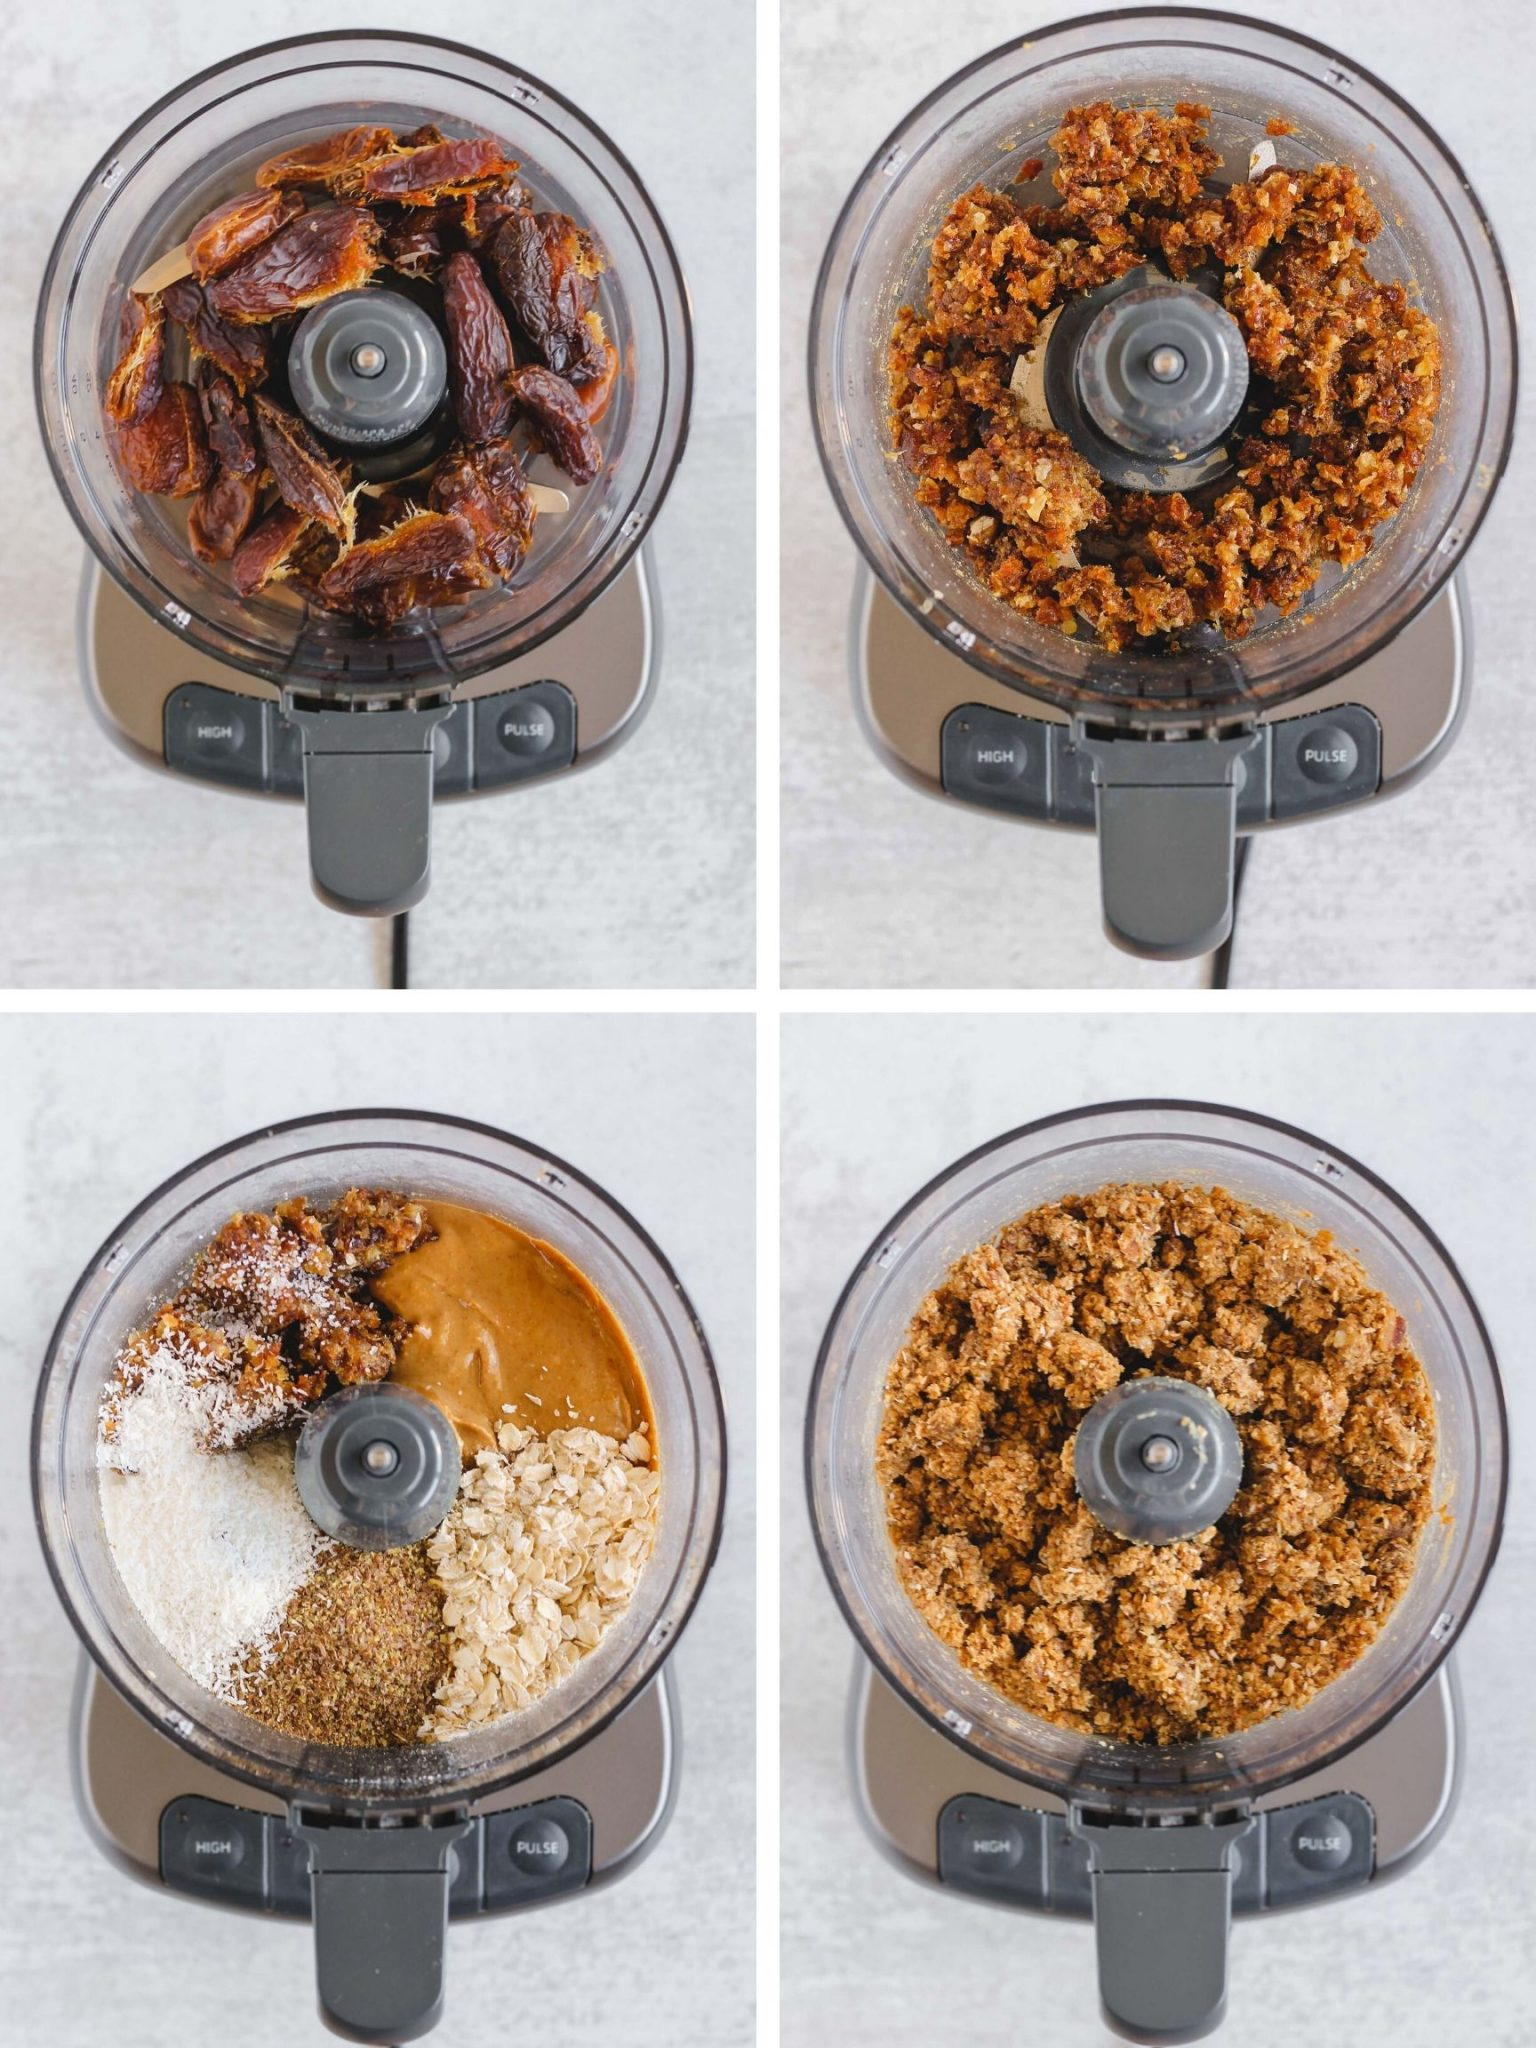 process photos of dates and additional ingredients being blended in food processor